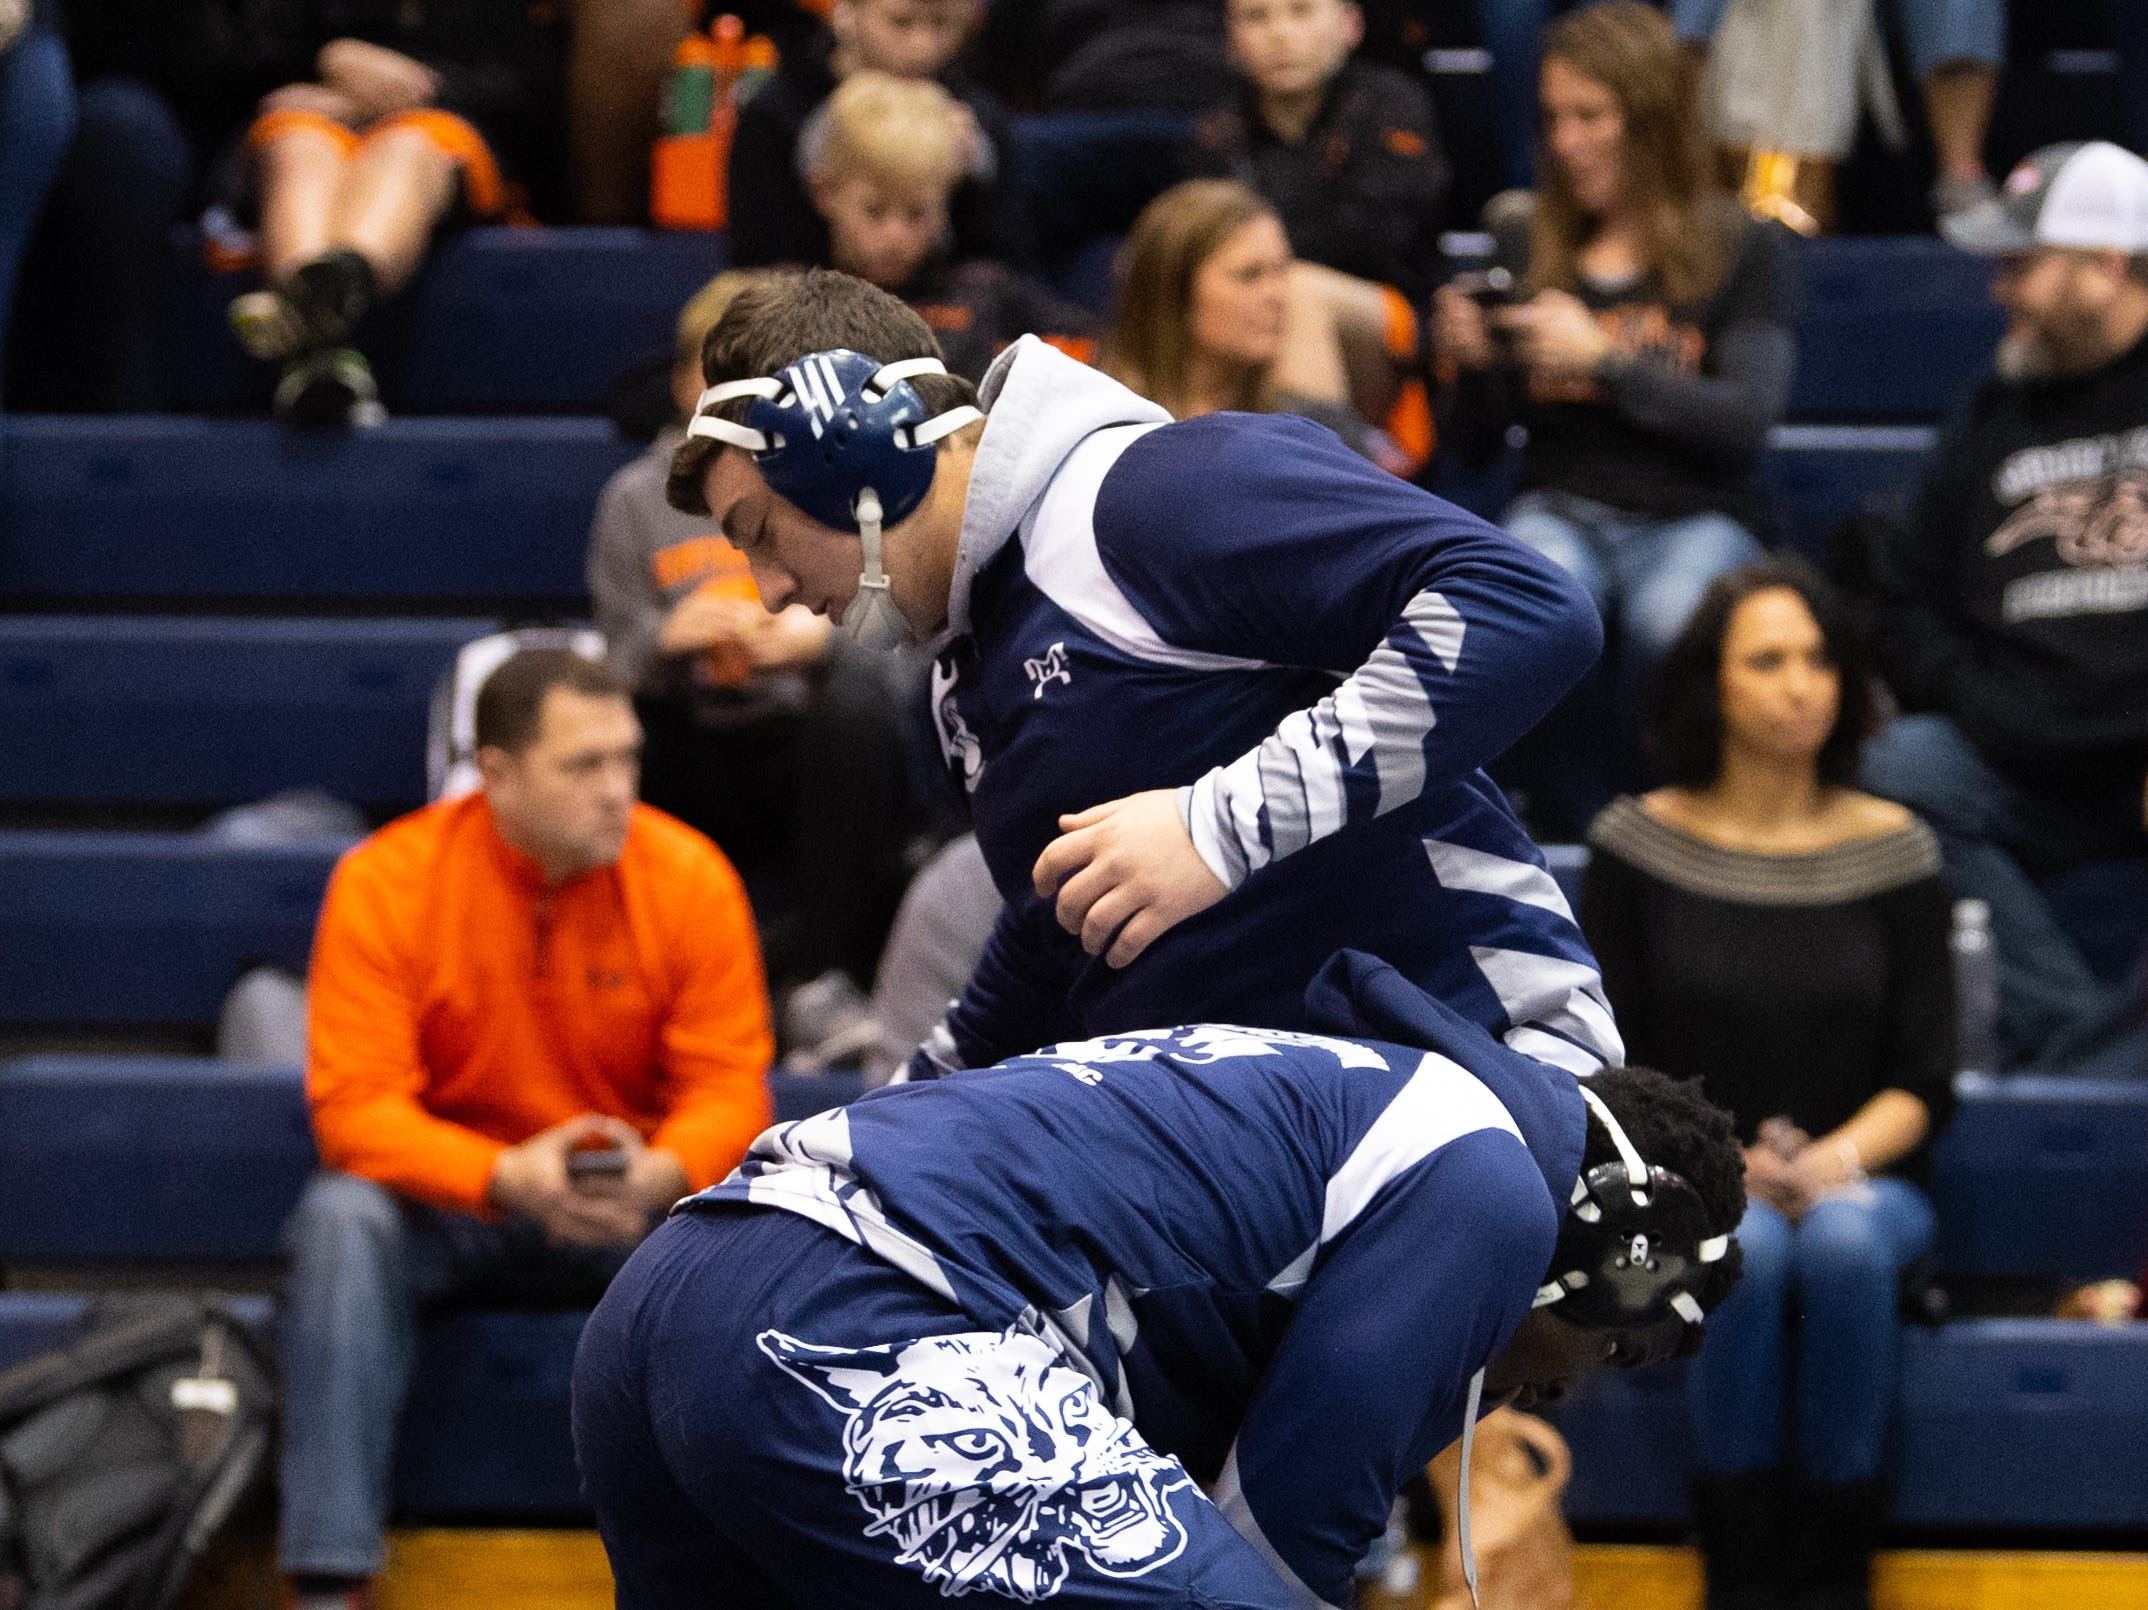 Raymond Christas (top) and Jamal Brandon (bottom) of Dallastown practice their techniques before taking on Central York, Thursday, January 3, 2019. The Wildcats defeated the Panthers 62-18.